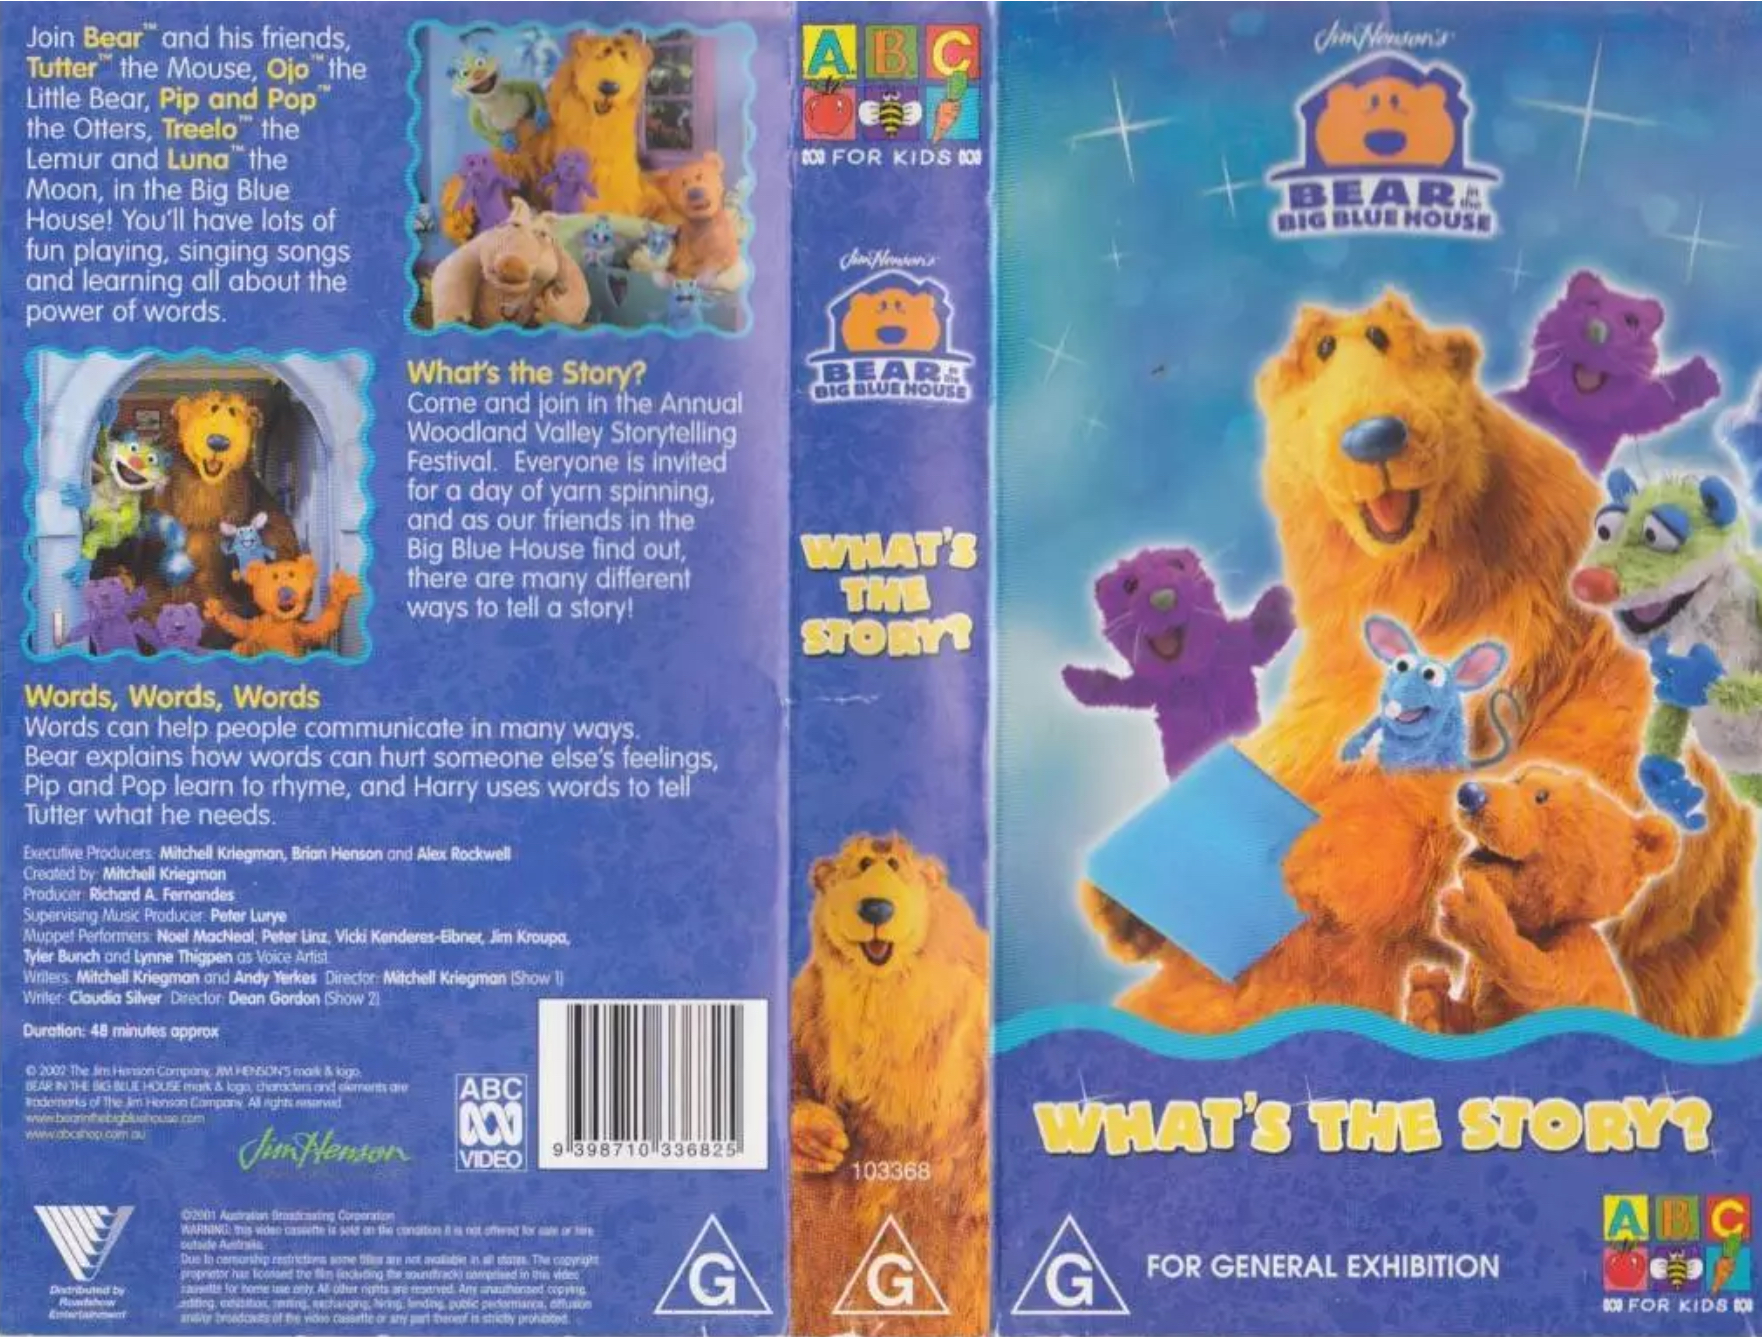 Bear in the Big Blue House - What's the Story/Gallery